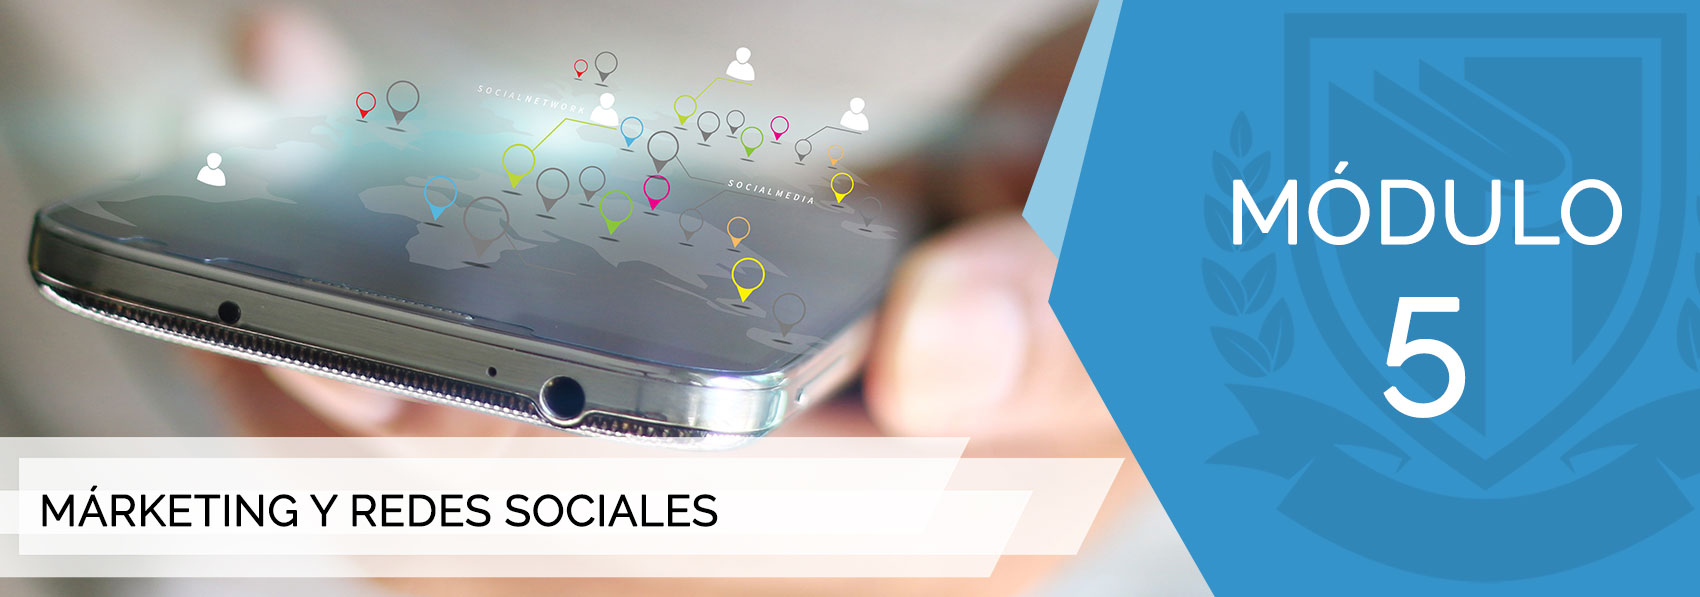 Módulo 5 - Marketing y redes sociales